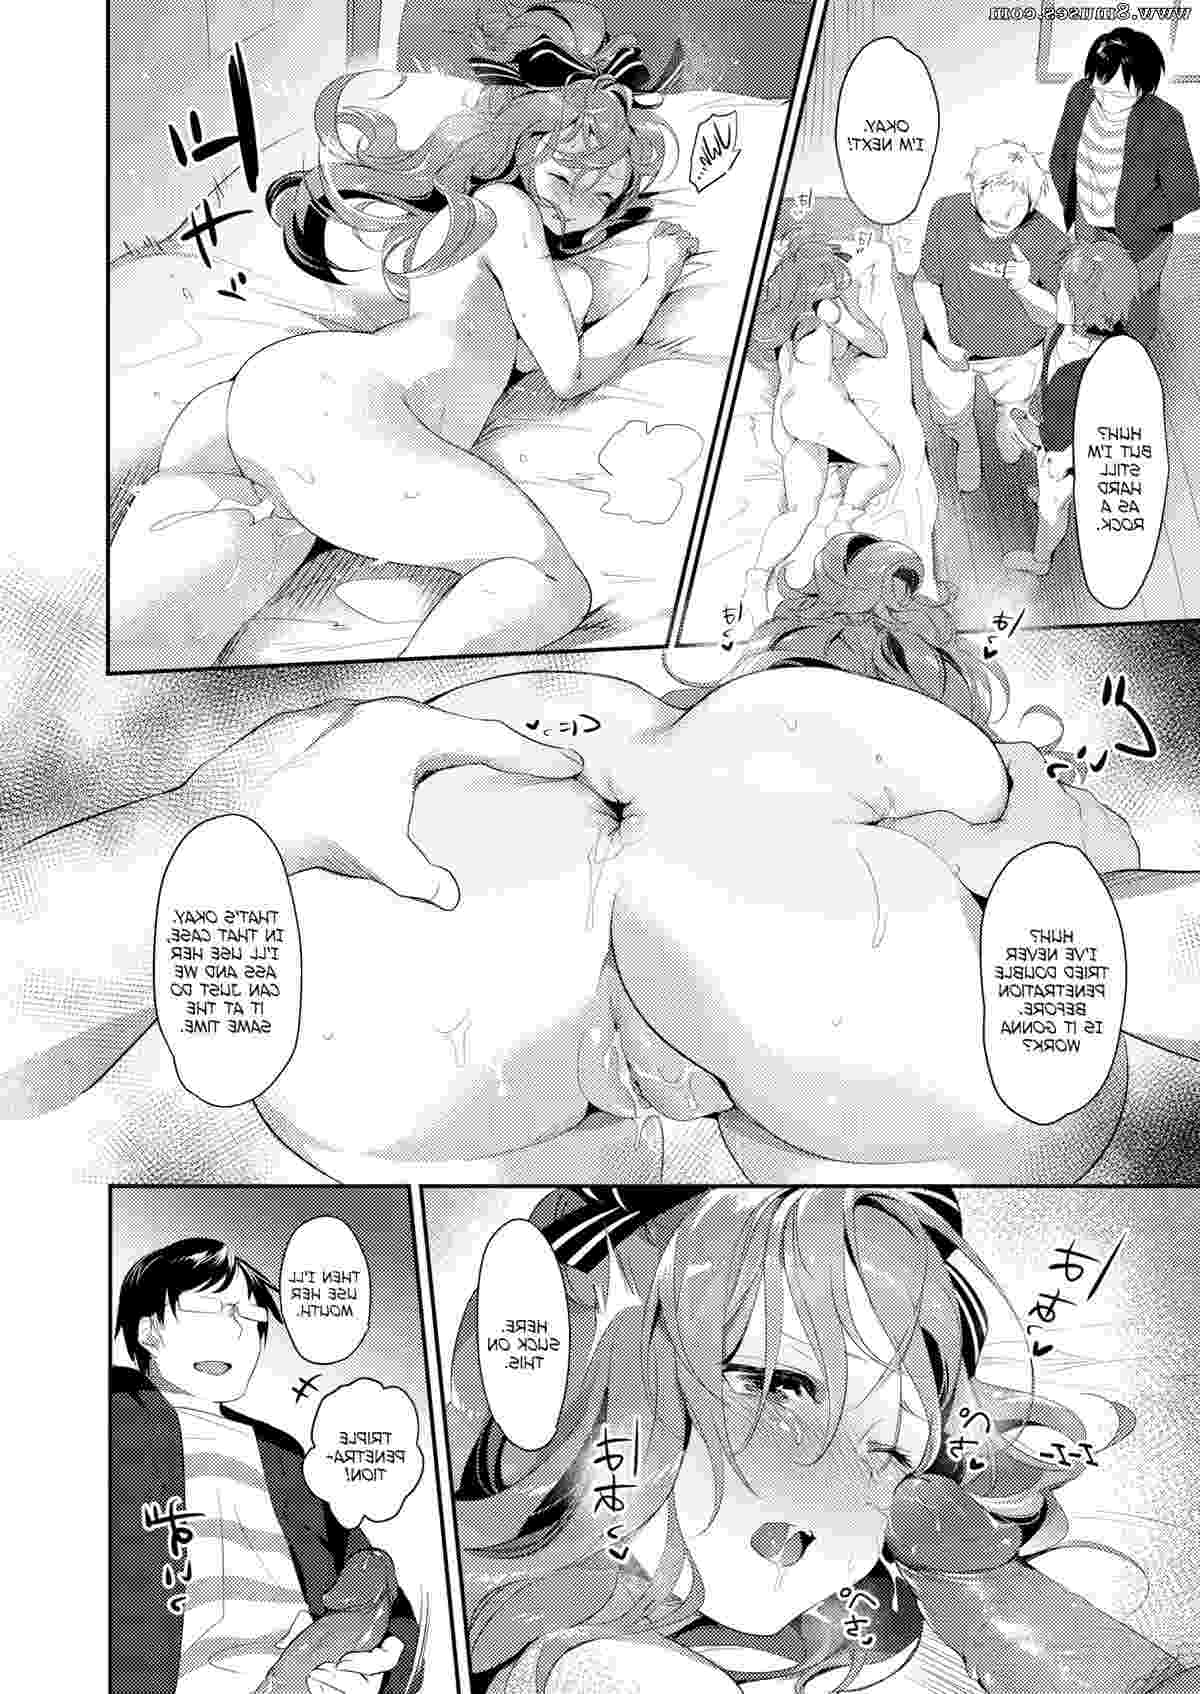 Fakku-Comics/Mg-Kurino/Electric-Sheeps-Dream Electric_Sheeps_Dream__8muses_-_Sex_and_Porn_Comics_15.jpg